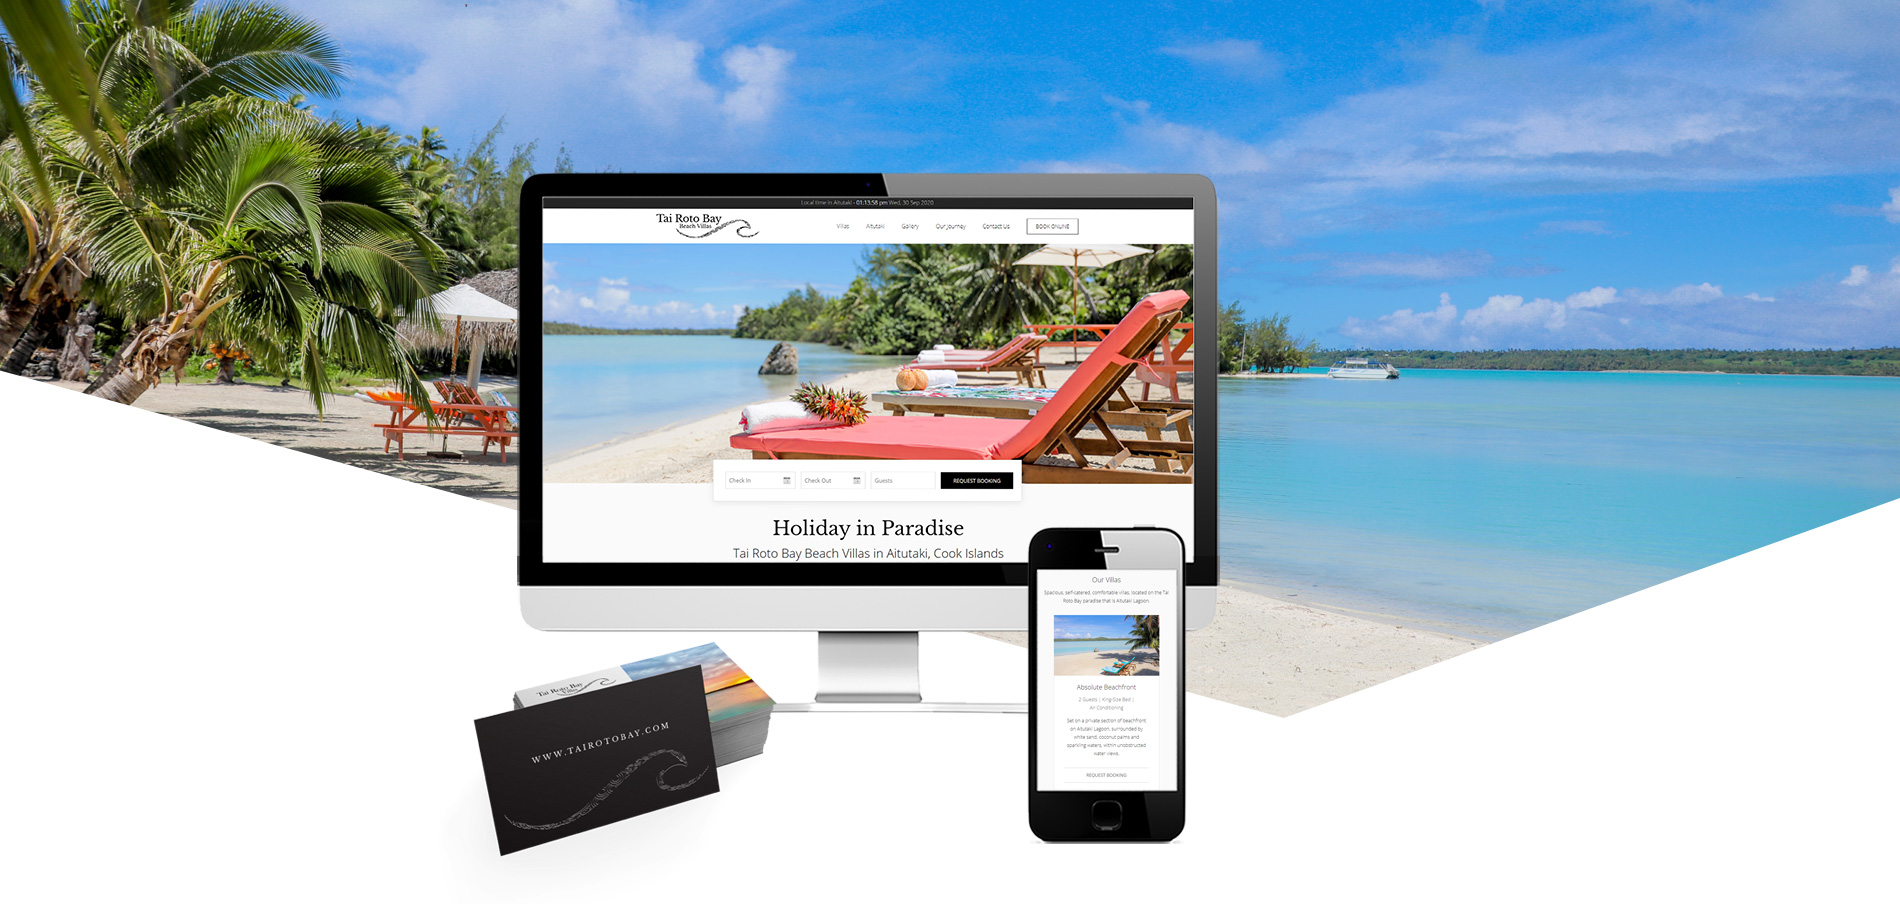 Tai Roto Bay Beach VIllas website and logo design banner - Tai Roto Bay Beach Villas